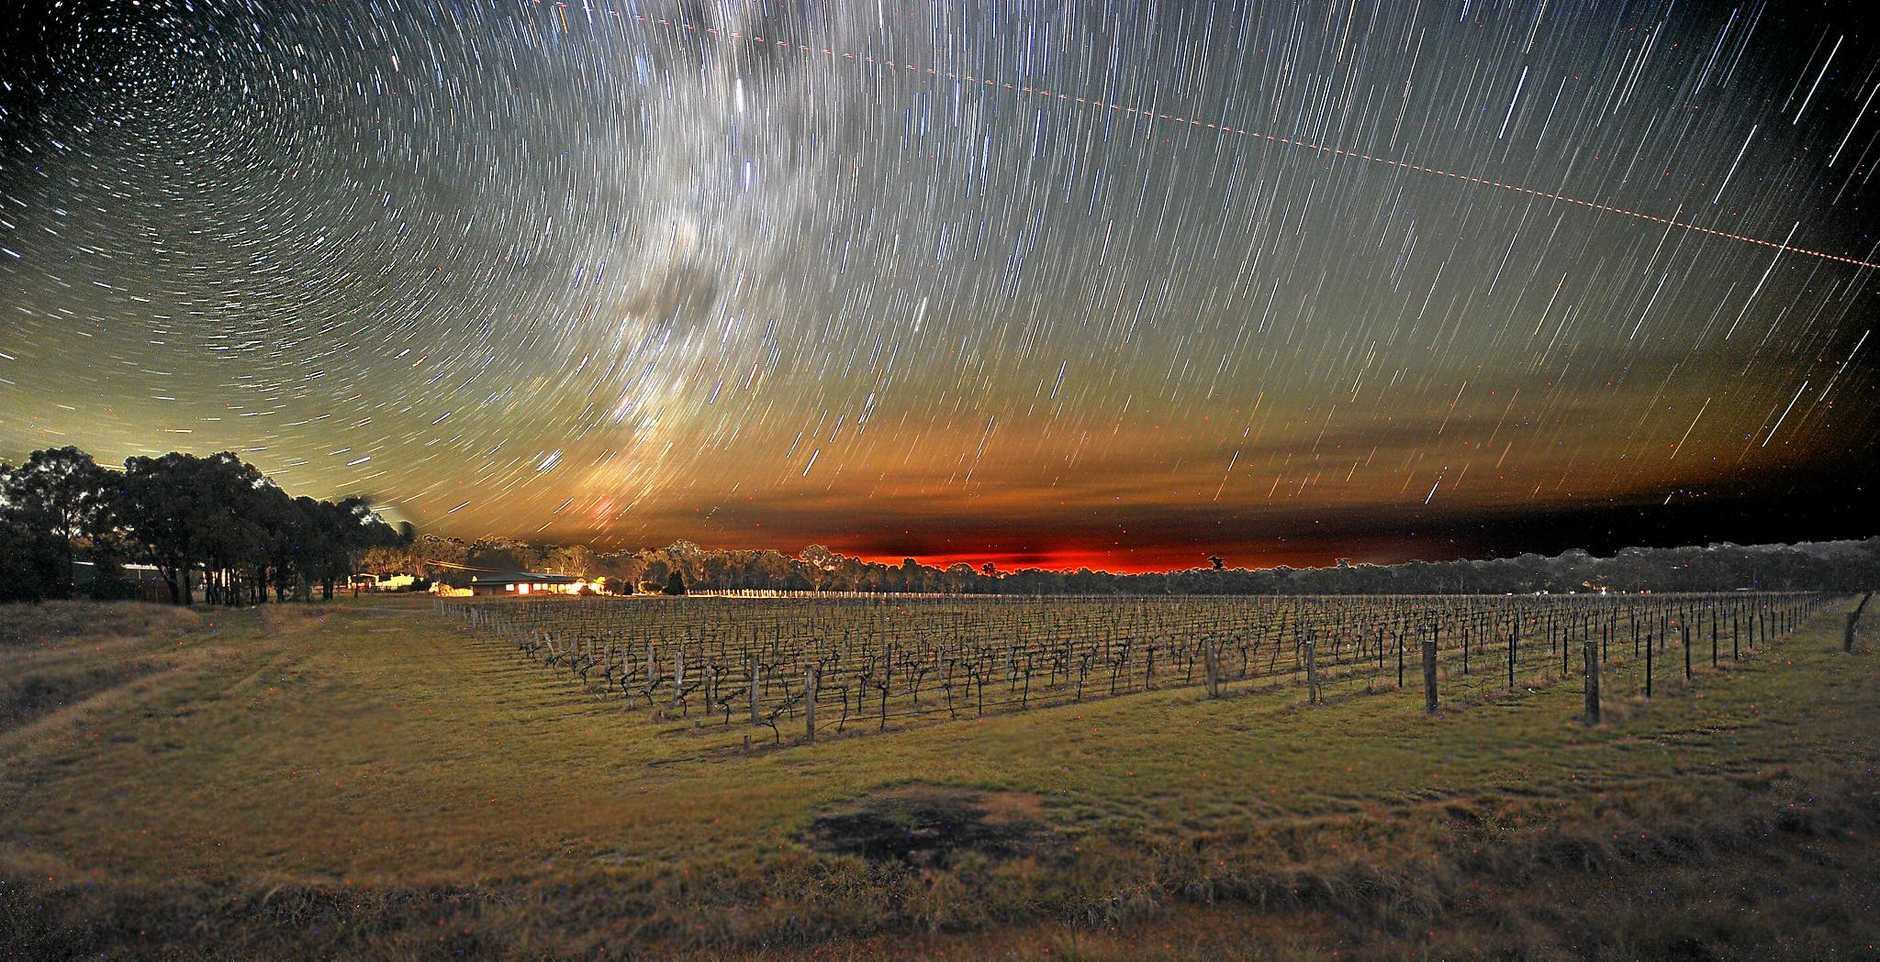 STARRY NIGHTS: James Barclay wants photos like this one over Kingsley Grove to help secure a dark sky certification.